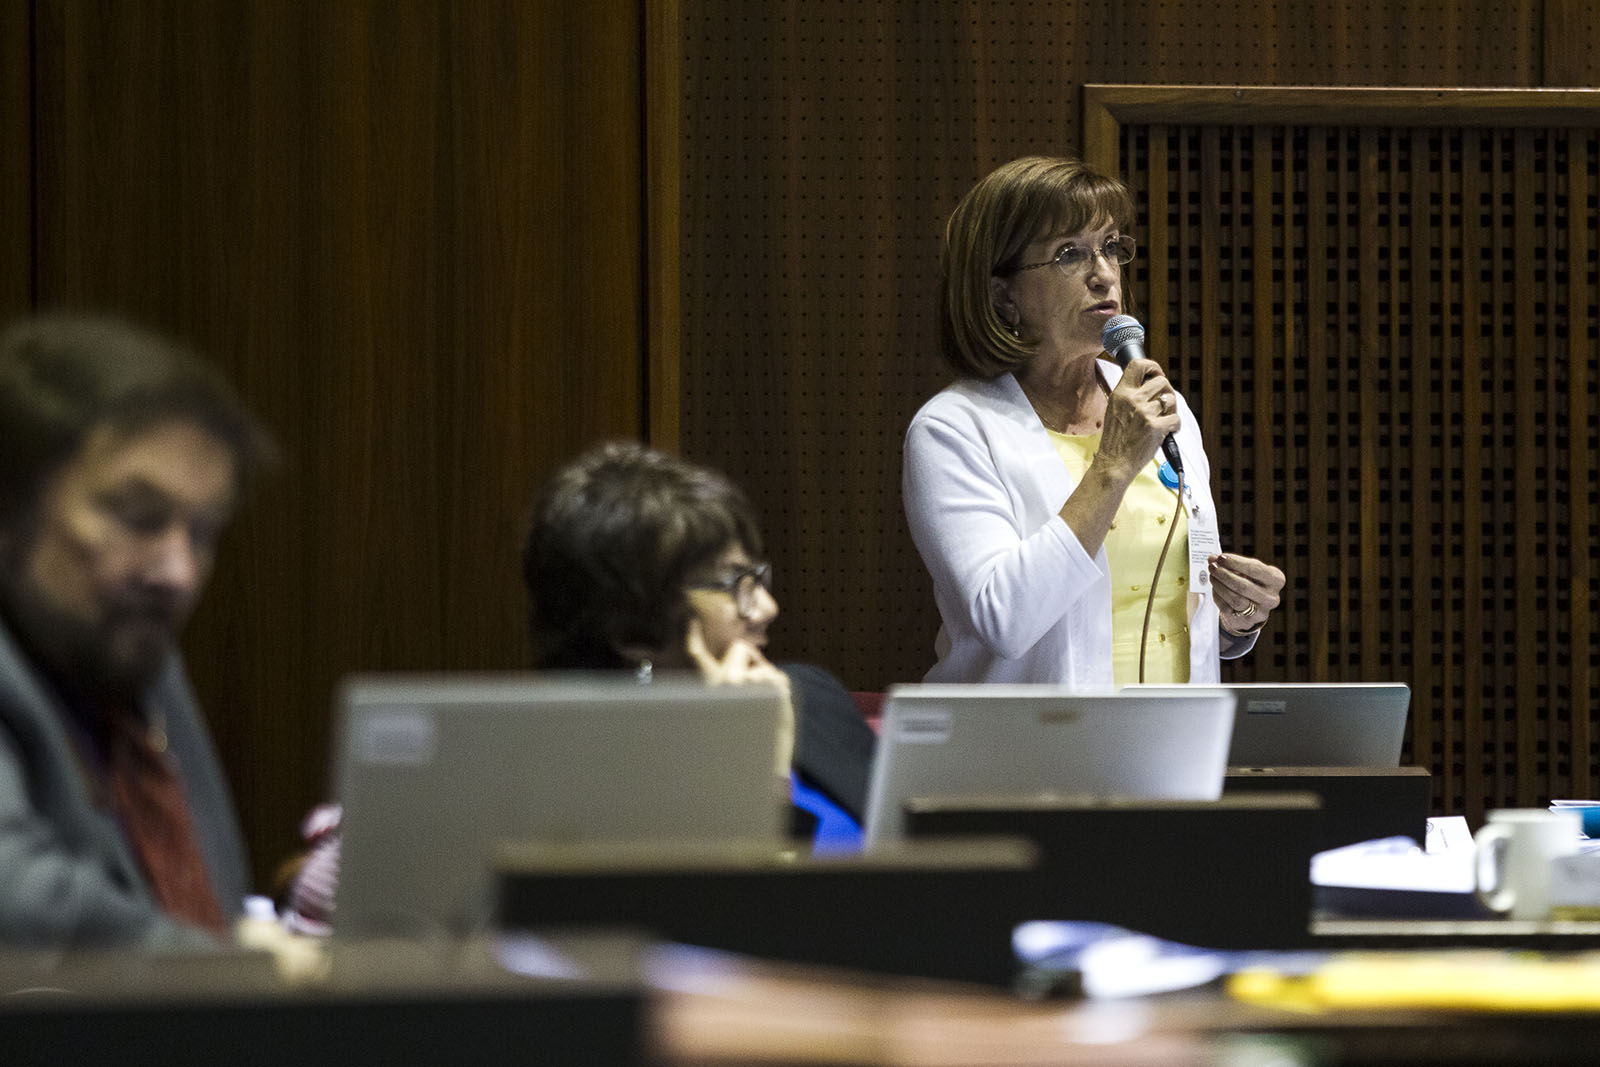 Rep. Debbie McCune Davis, D-Phoenix, shown here speaking on the floor of the Arizona House of Representatives on May 3, 2016, said that she believes Arizona is ripe for model legislation because of a large influence from lobbyists, among other reasons such as low pay for lawmakers and term limits. Photo by Sarah Jarvis/AZCIR